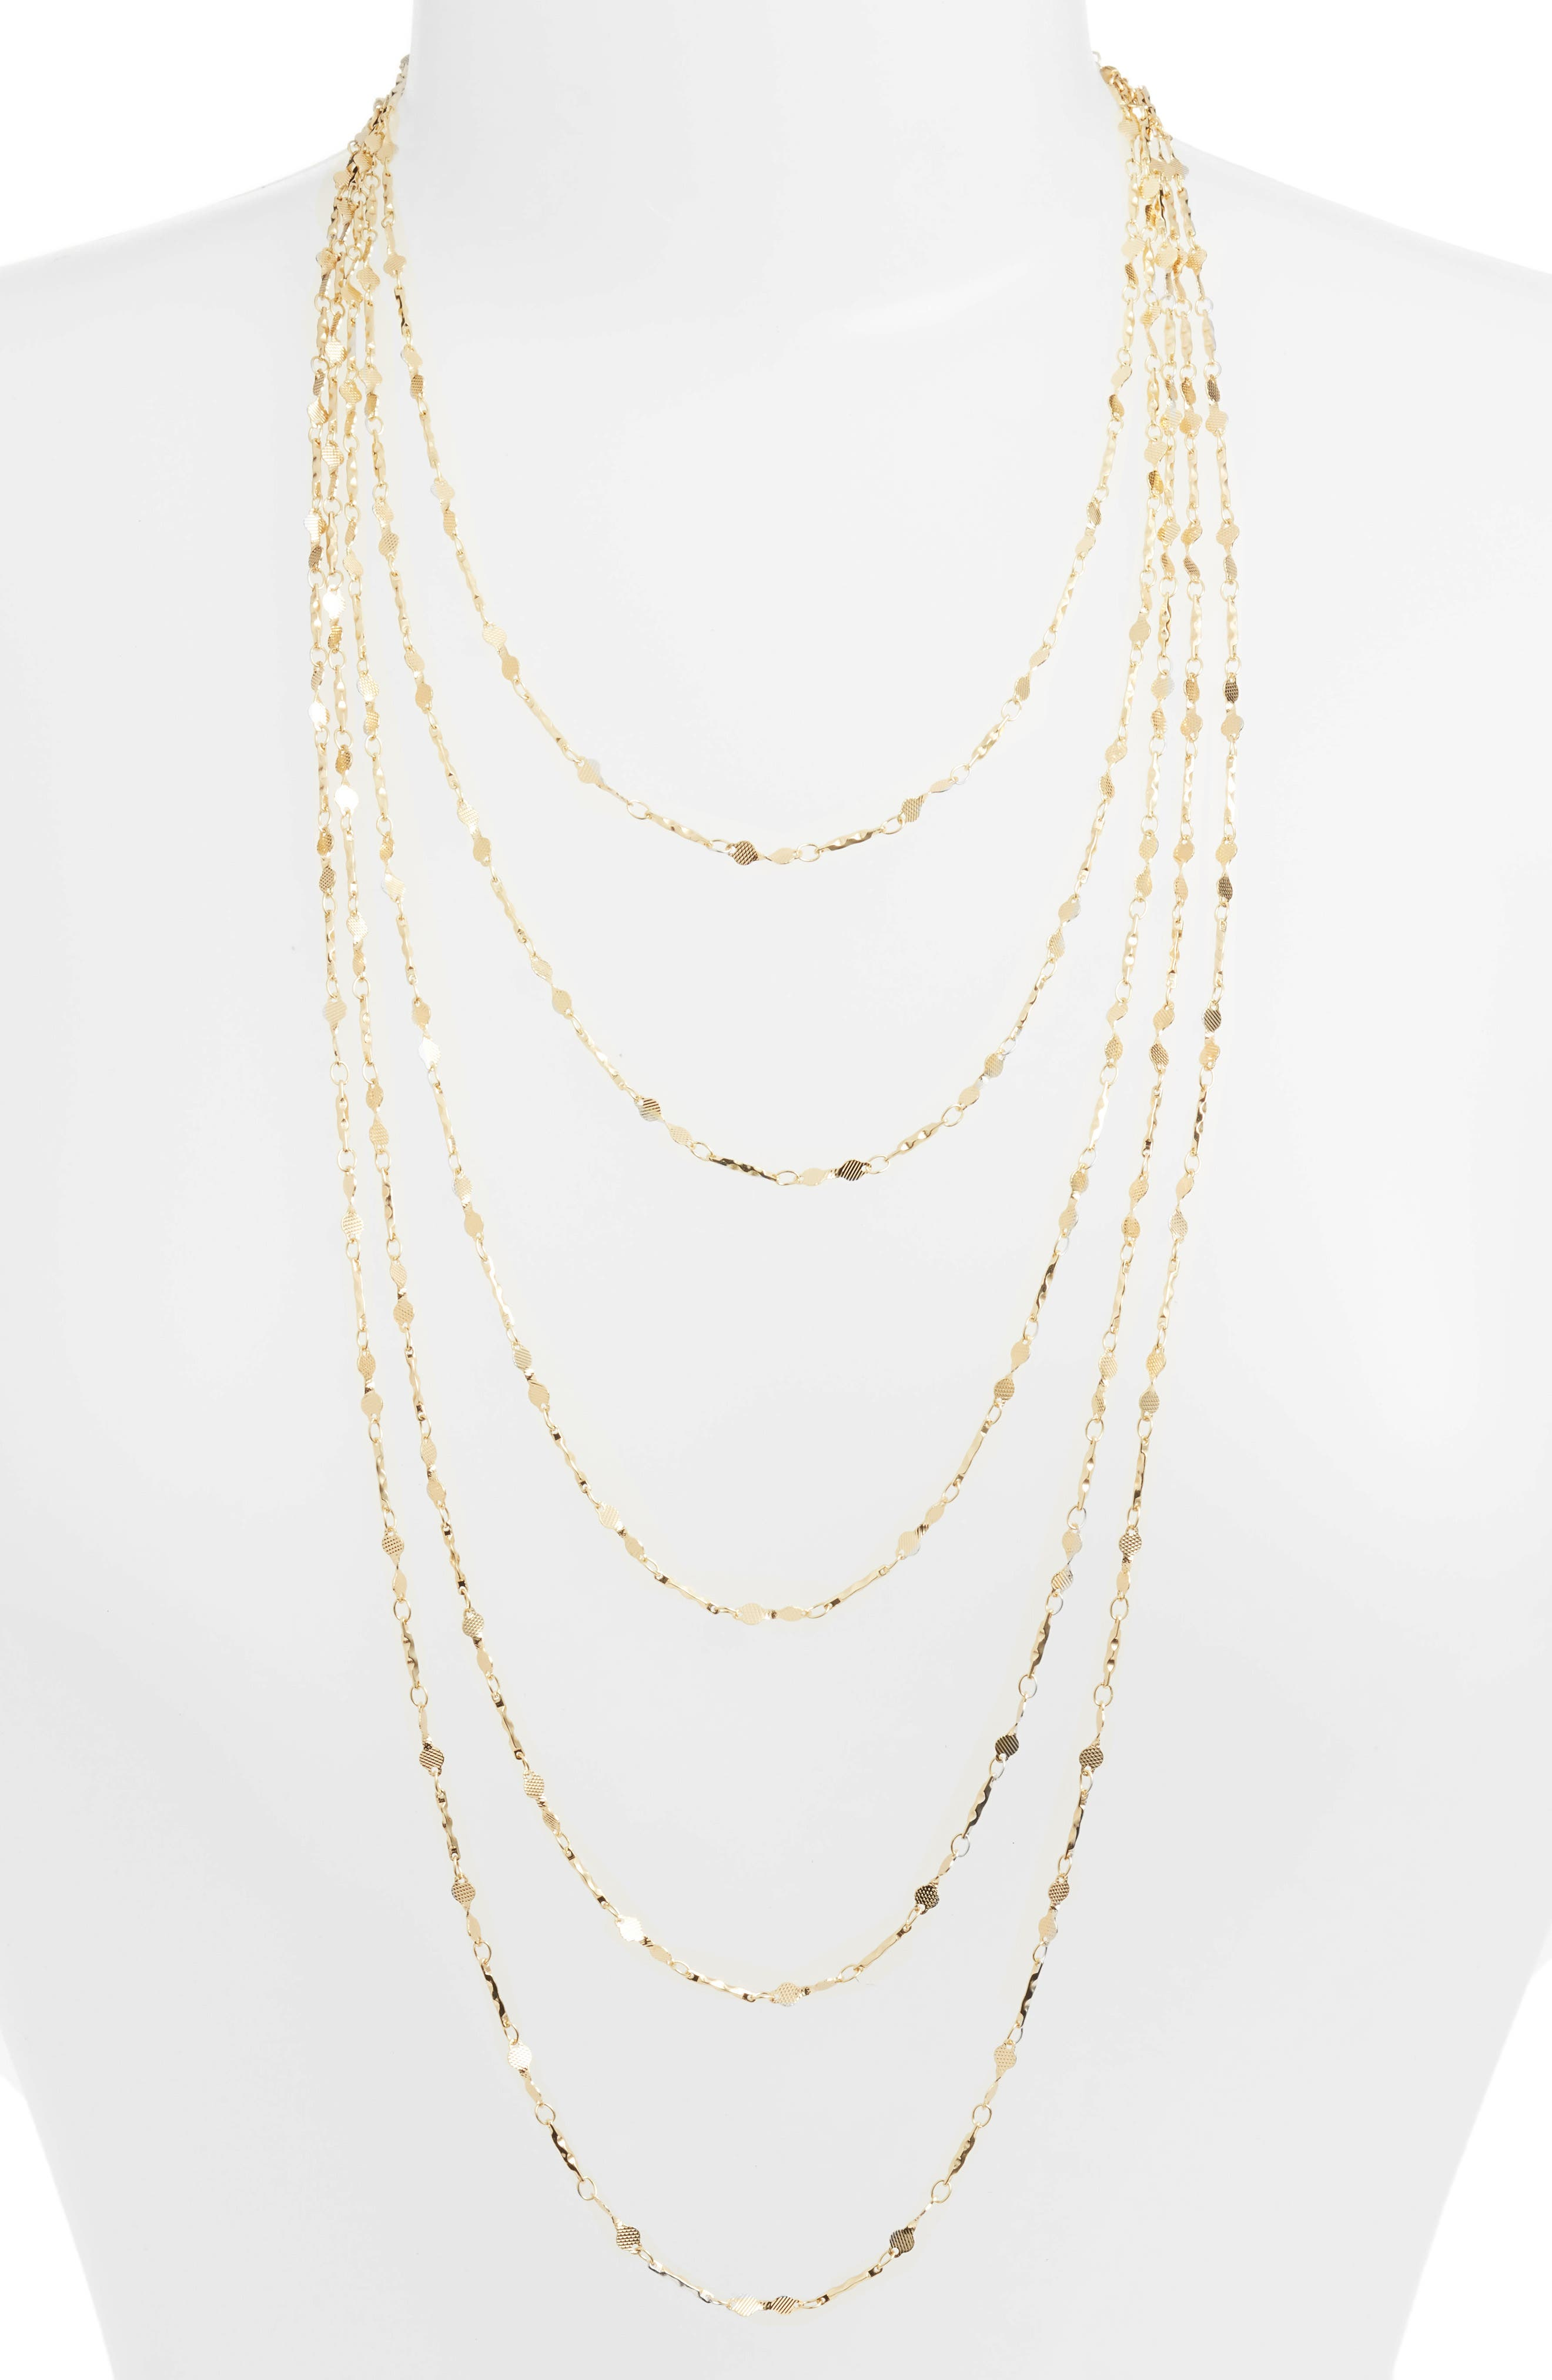 5-Strand Necklace,                             Main thumbnail 1, color,                             GOLD